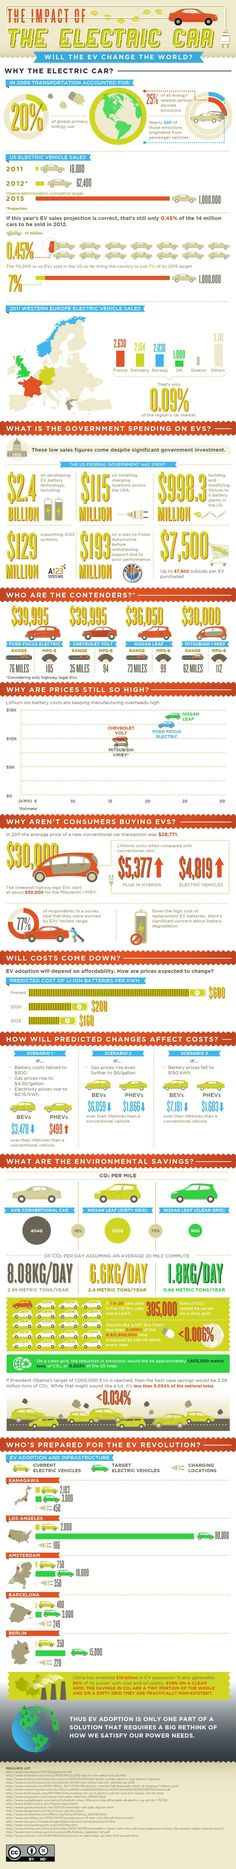 The Impact of the Electric Car